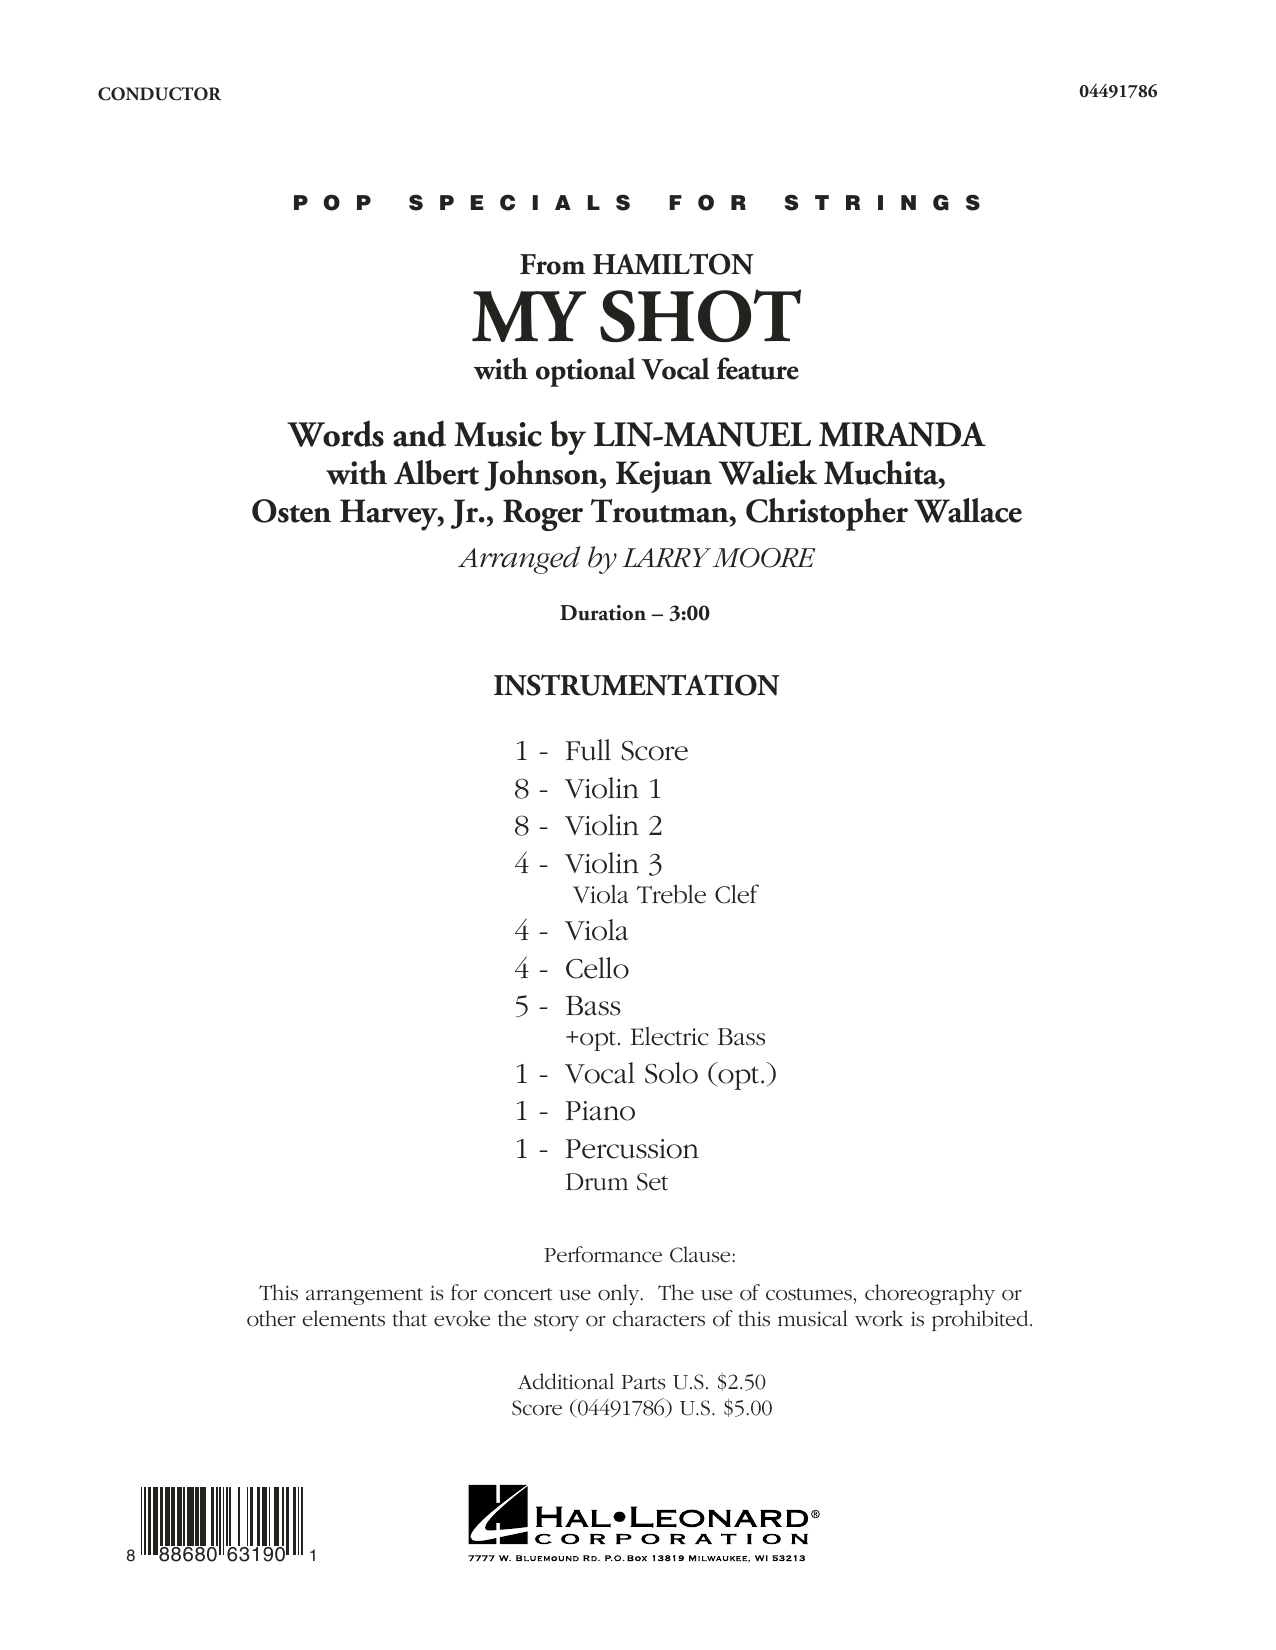 My Shot (from Hamilton) - Conductor Score (Full Score) Sheet Music